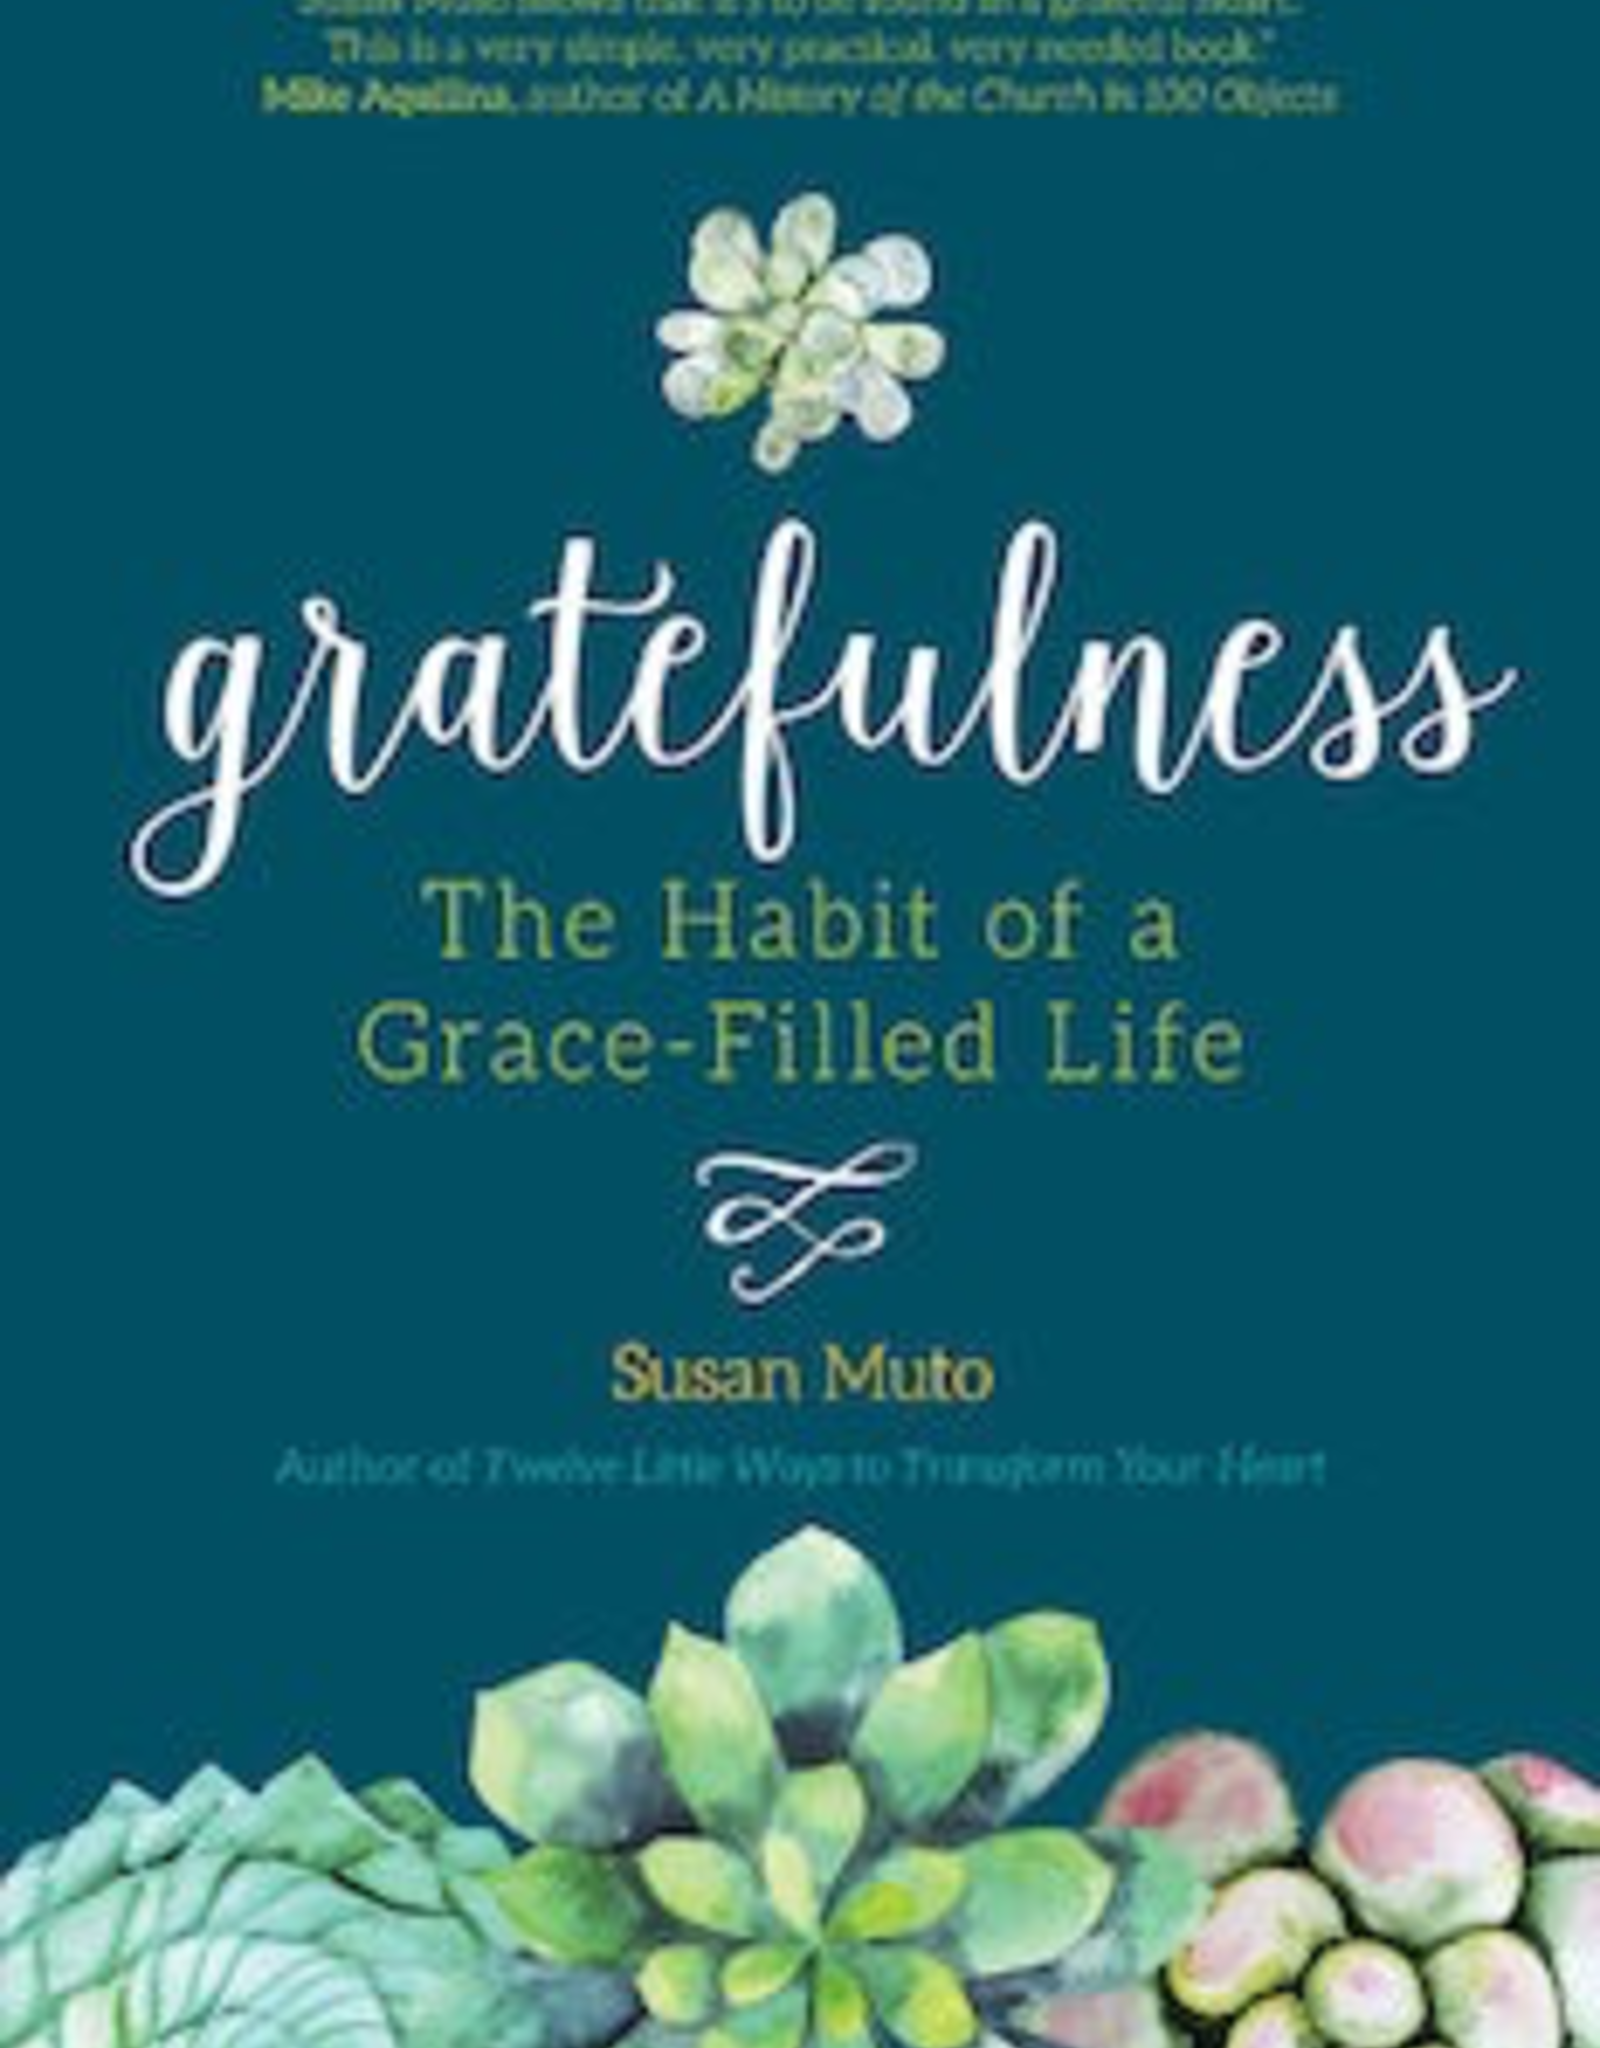 Ave Maria Press Gratefulness: The Habit of a Grace-filled Life, by Susan Muto (paperback)